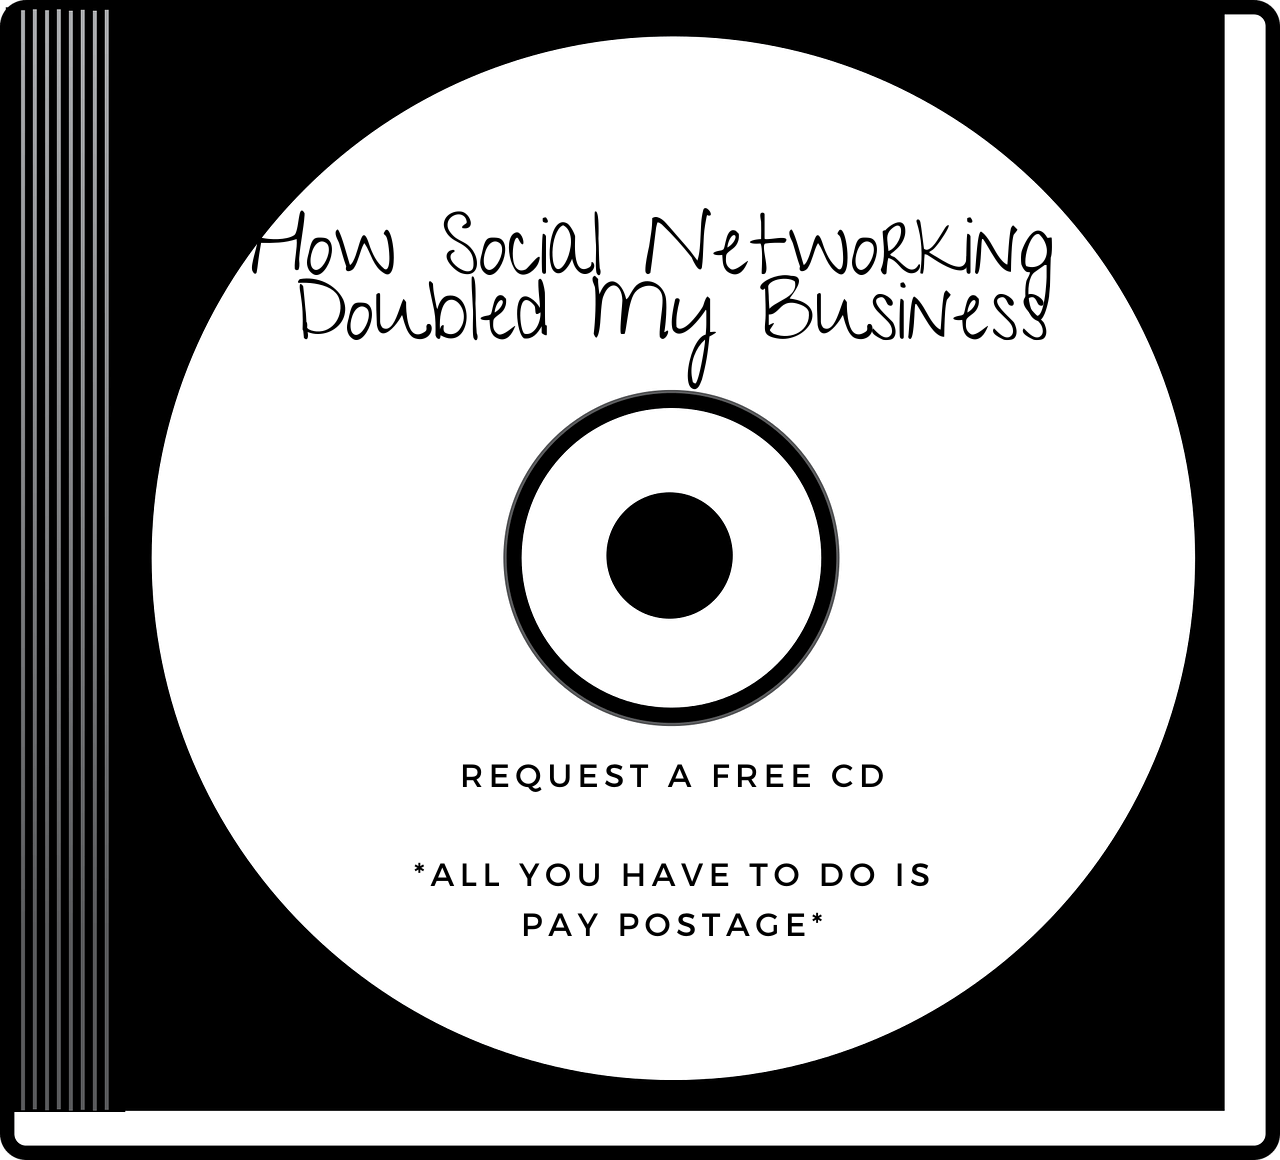 How Social Networking Doubled My Business CD